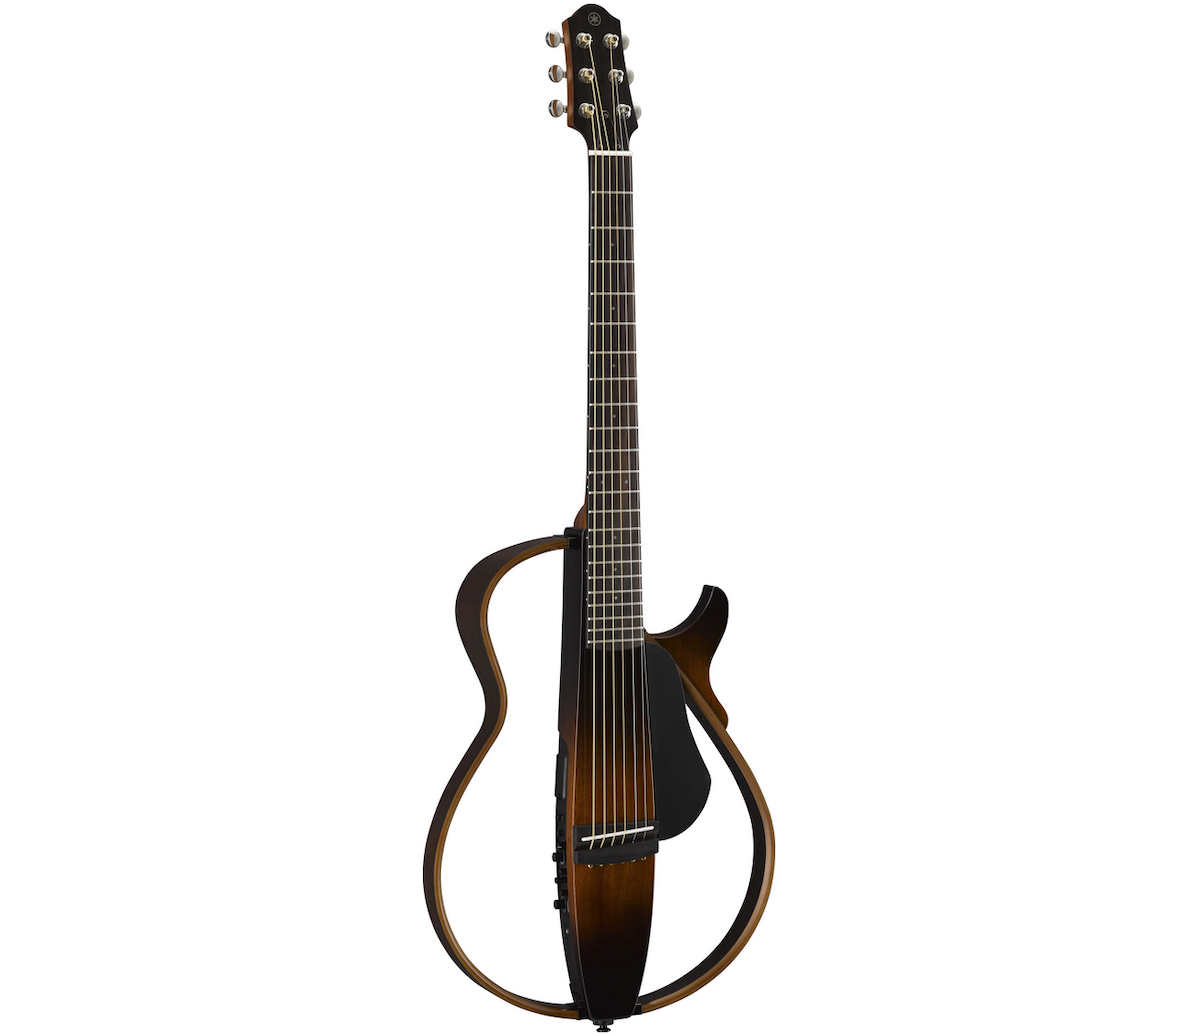 The Yamaha SLG200S SILENT Guitar.